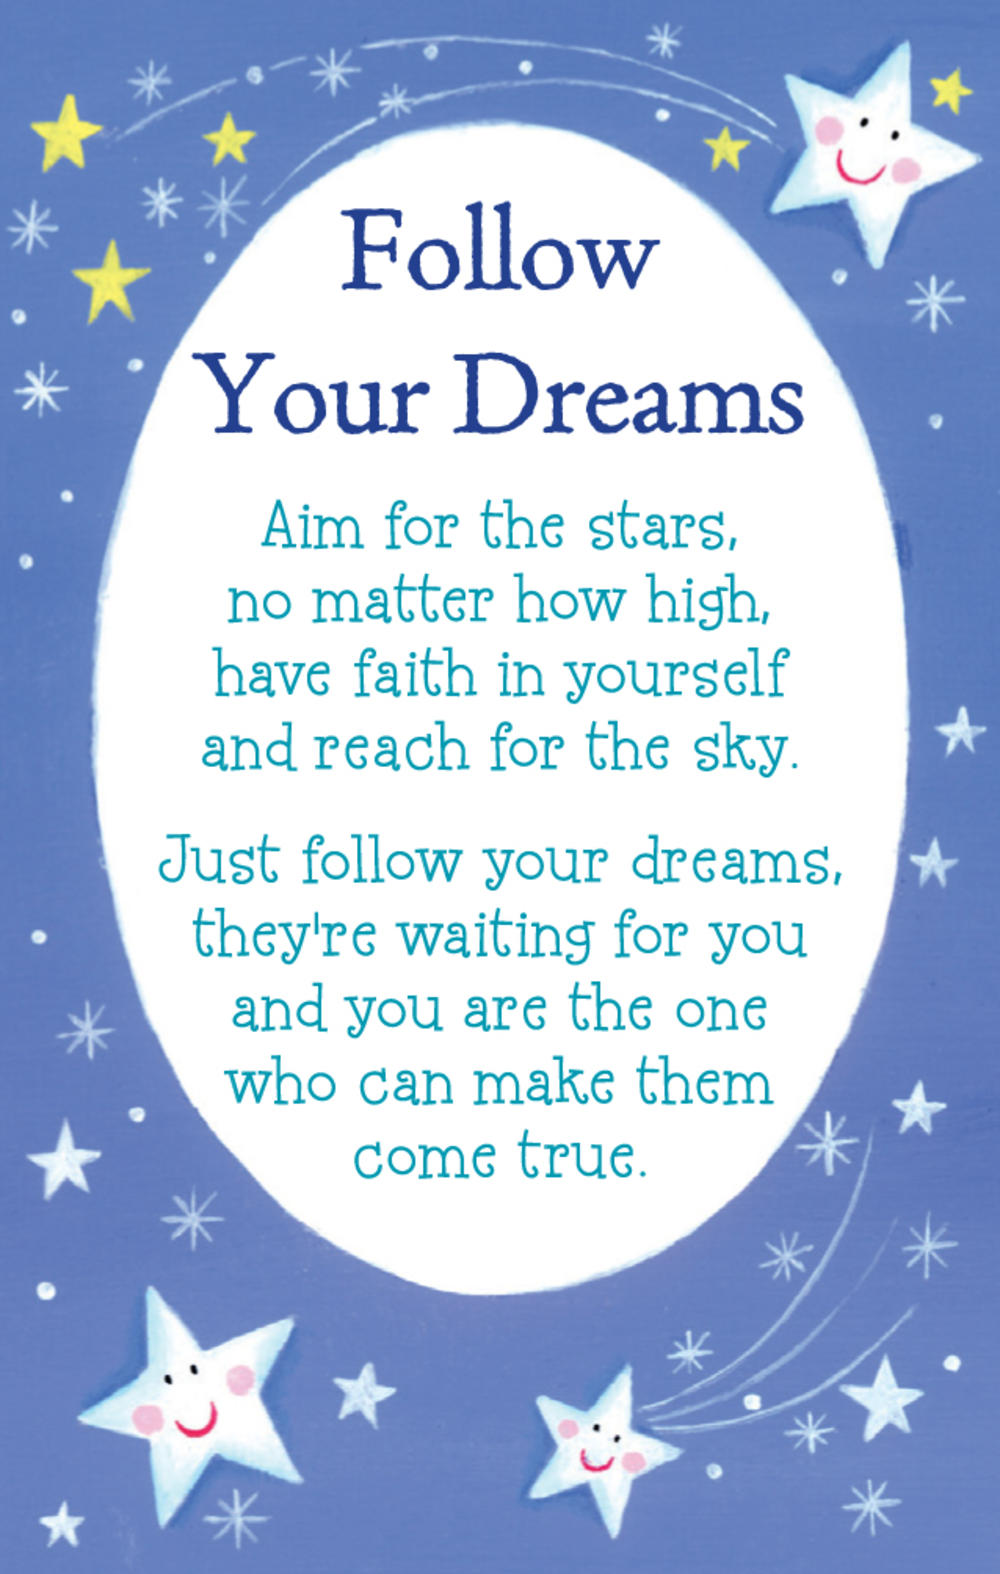 Follow Your Dreams Heartwarmers Keepsake Credit Card & Envelope